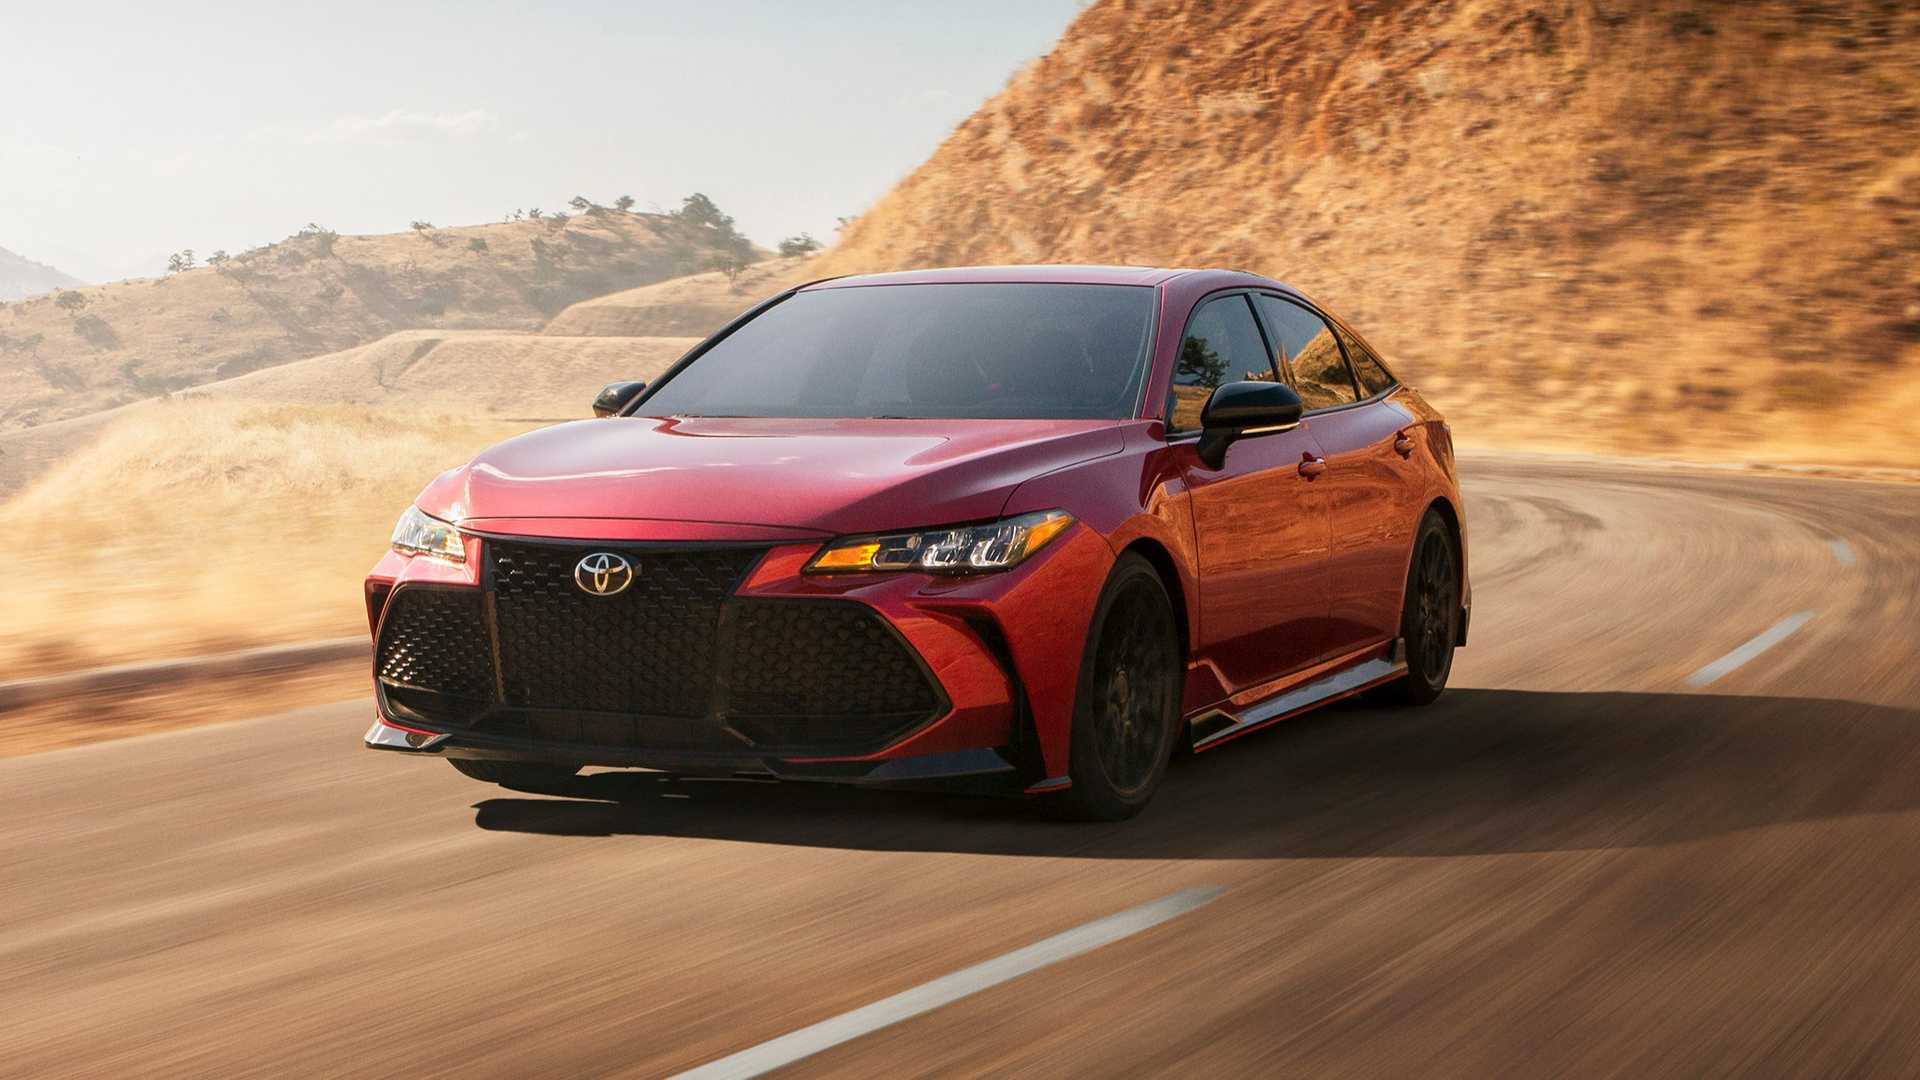 2020 Toyota Avalon Review.2020 Toyota Avalon Trd Costs From 43 255